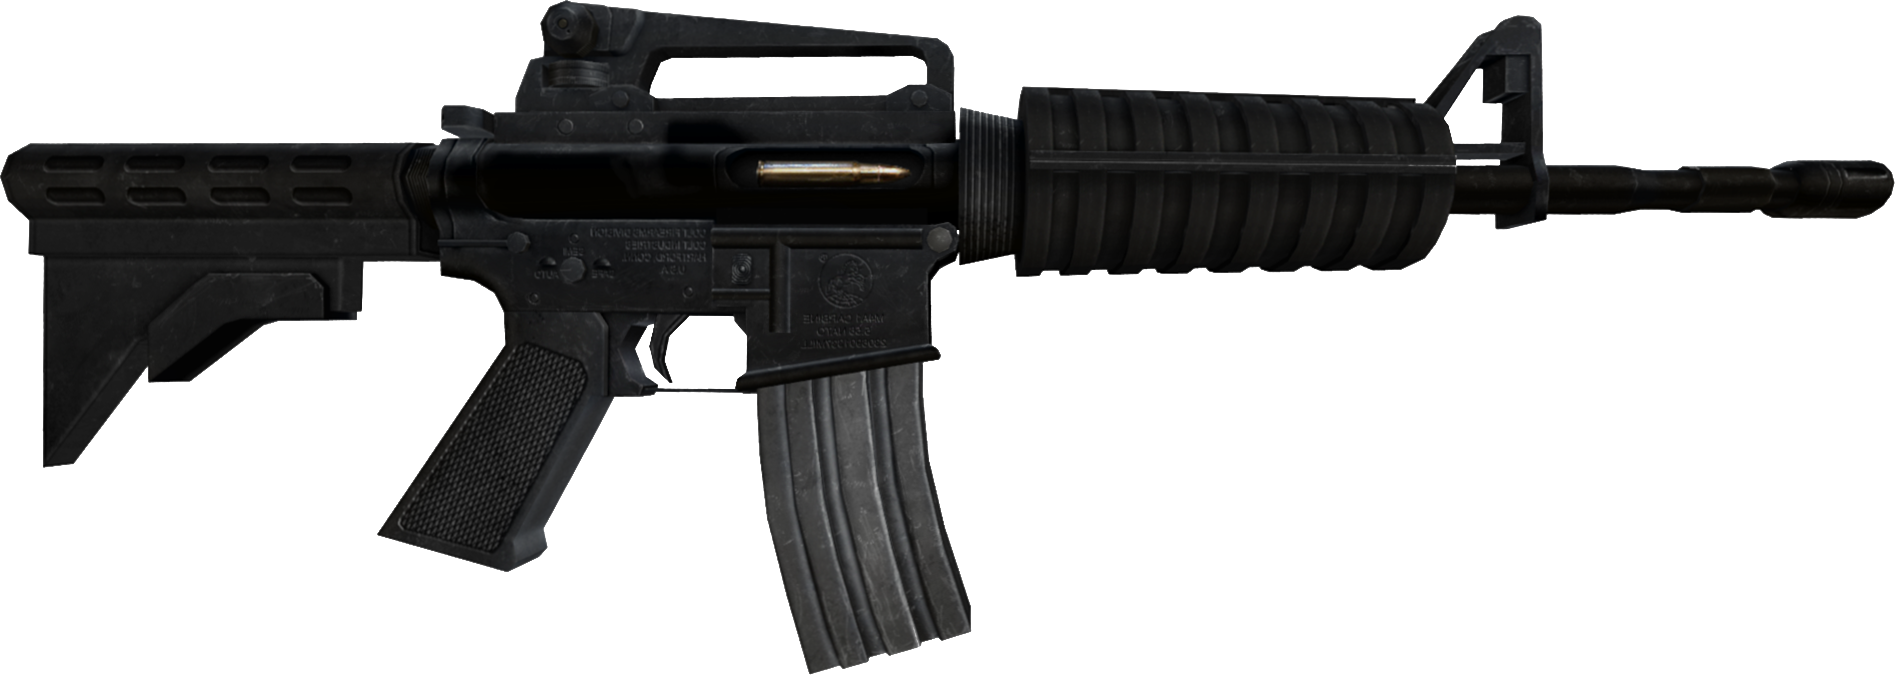 Image - Zewikia weapon assaultrifle m4a1 css.png | Zombie Escape Wiki |  FANDOM powered by Wikia - PNG Weapon